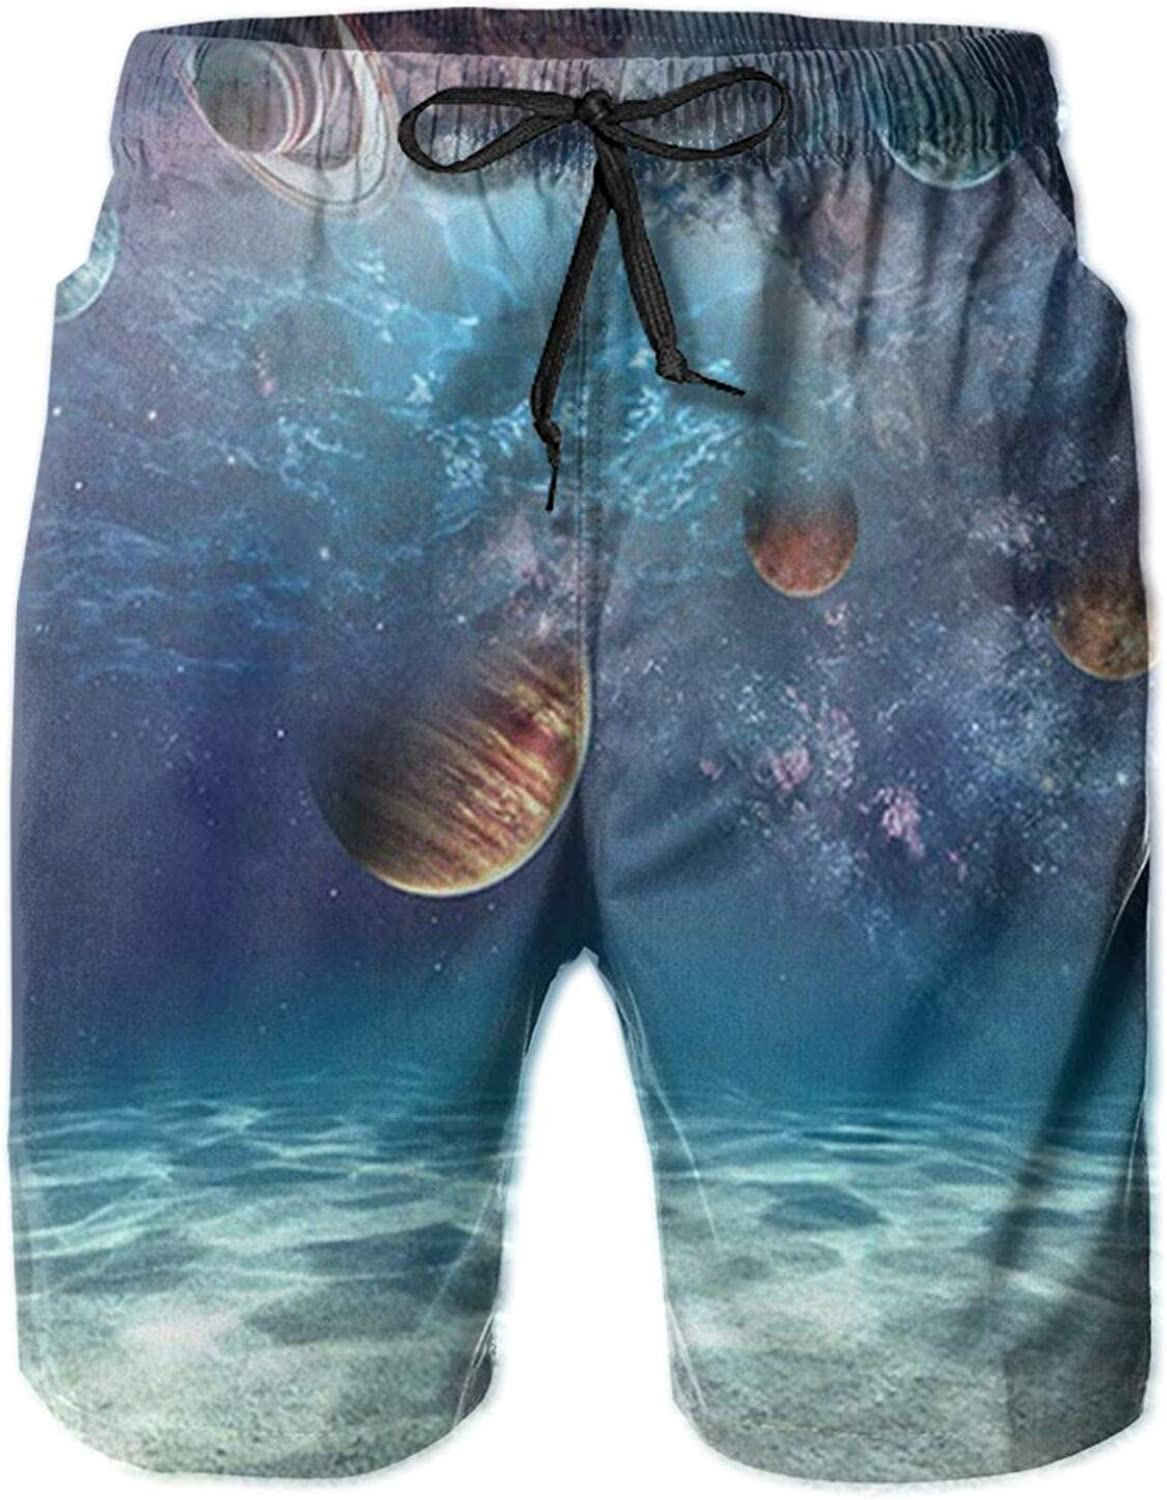 Space Complete Free Shipping Ocean Cosmic Planet Men's Quick Shorts Selling Board Beach Sum Dry